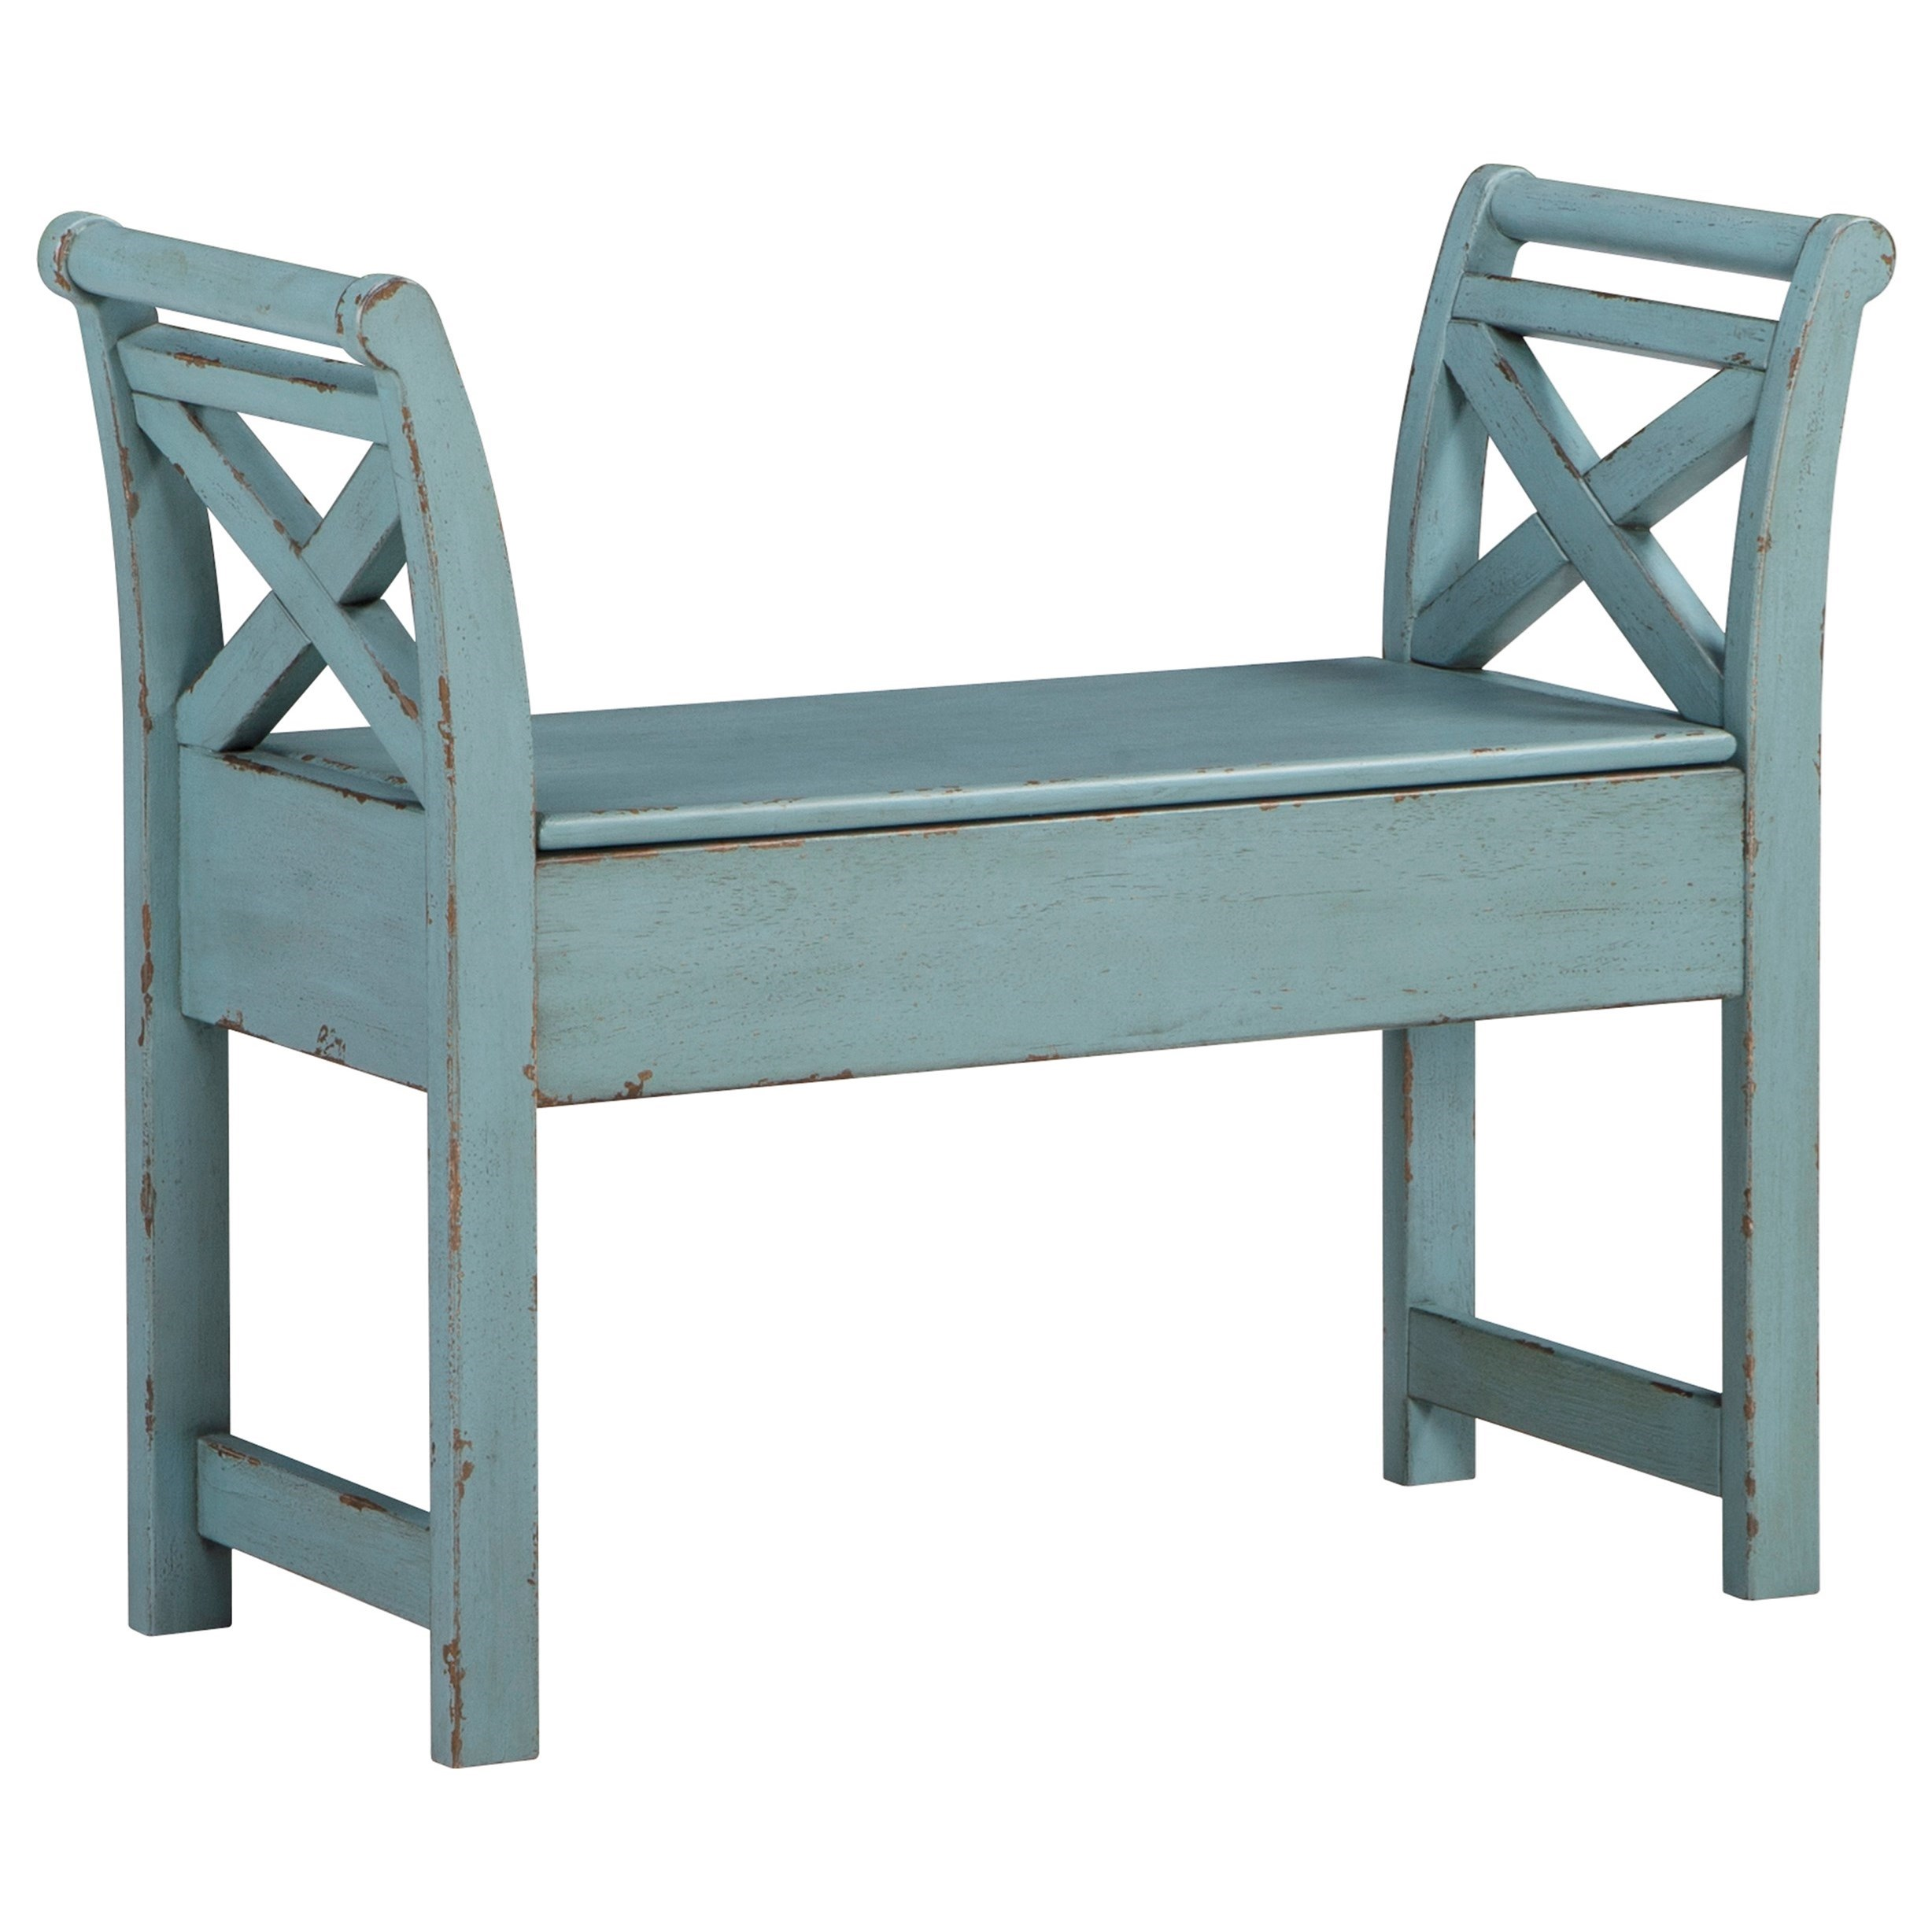 Heron Ridge Accent Bench by Signature Design by Ashley at Zak's Home Outlet